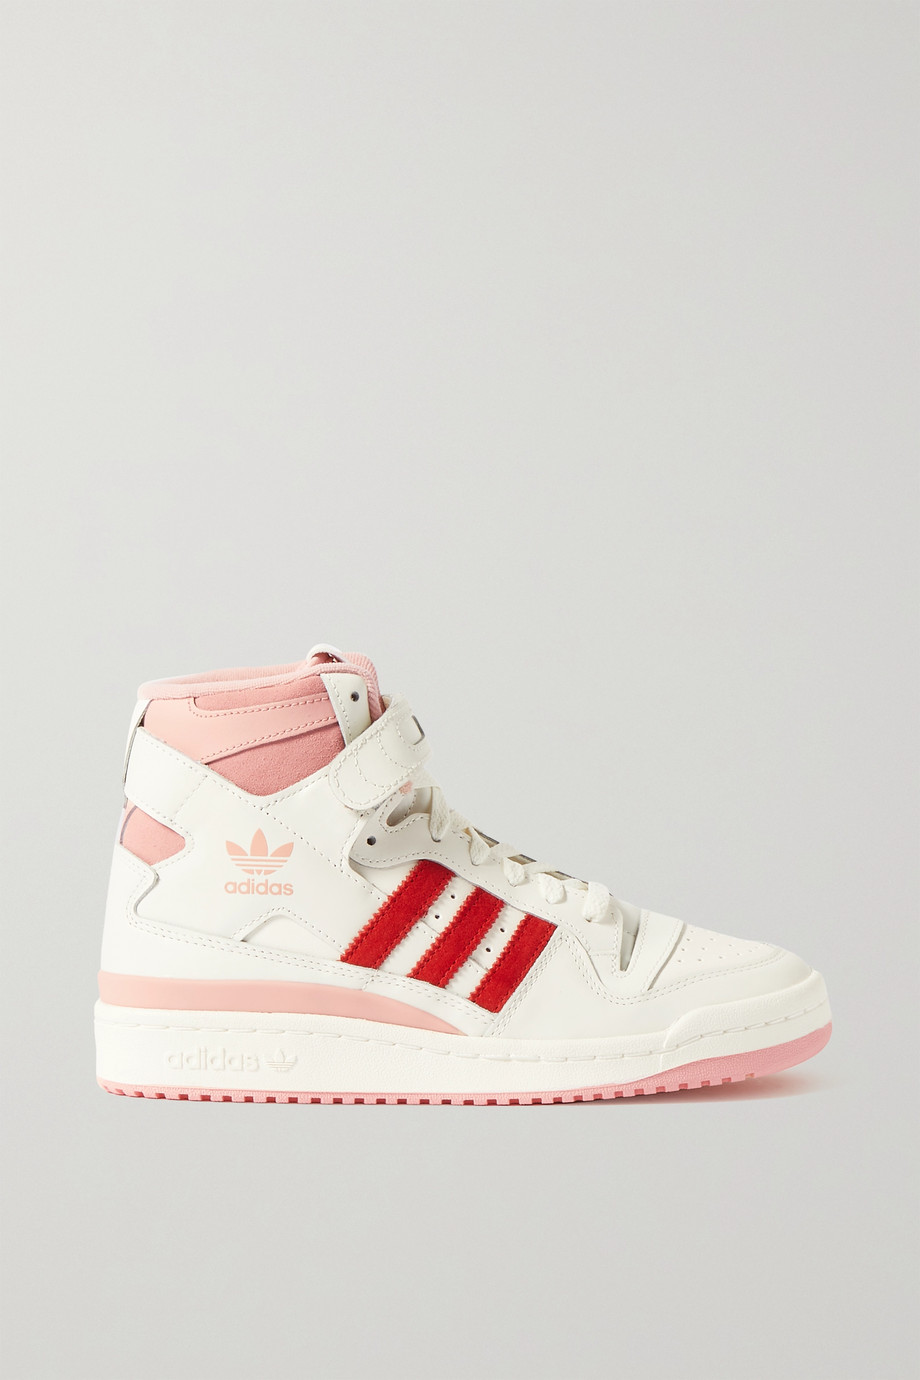 adidas Originals Forum 84 Hi leather and suede high-top sneakers